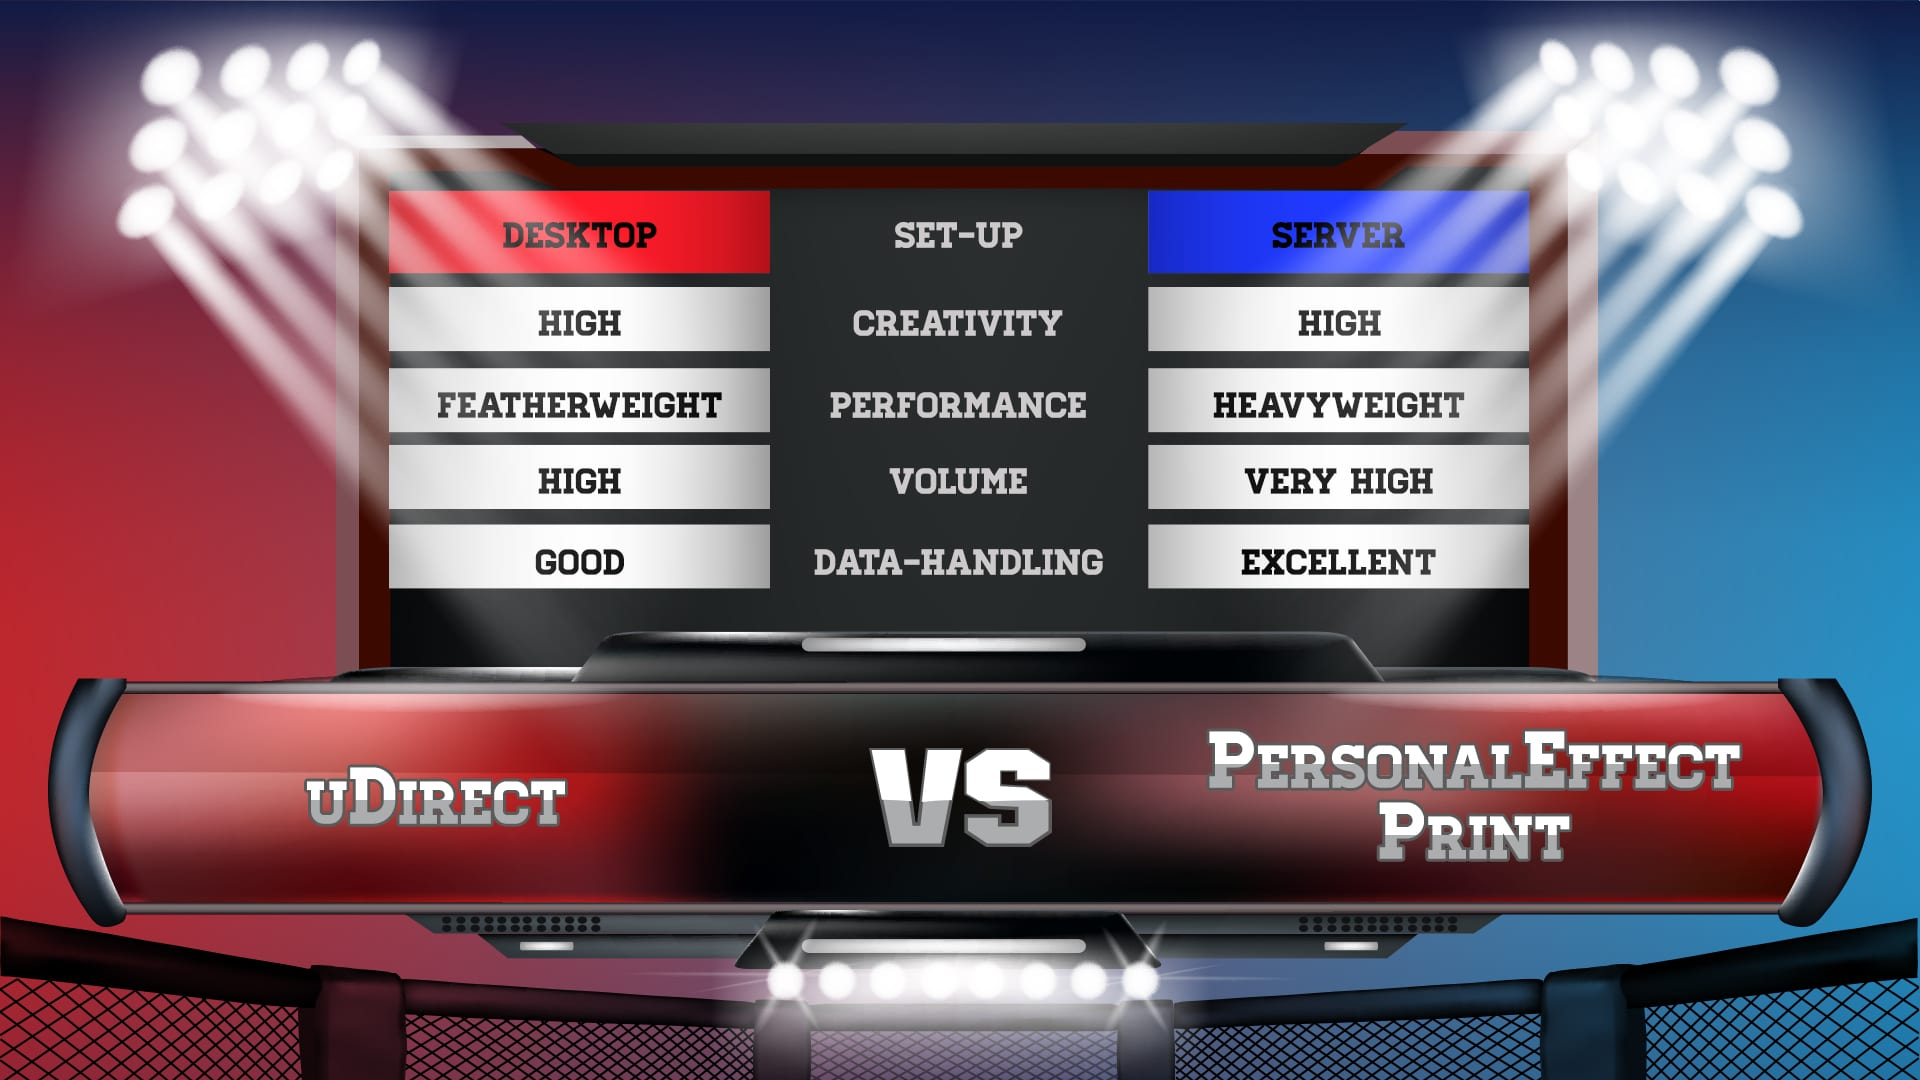 uDirect vs PersonalEffect: A boxing ring analogy